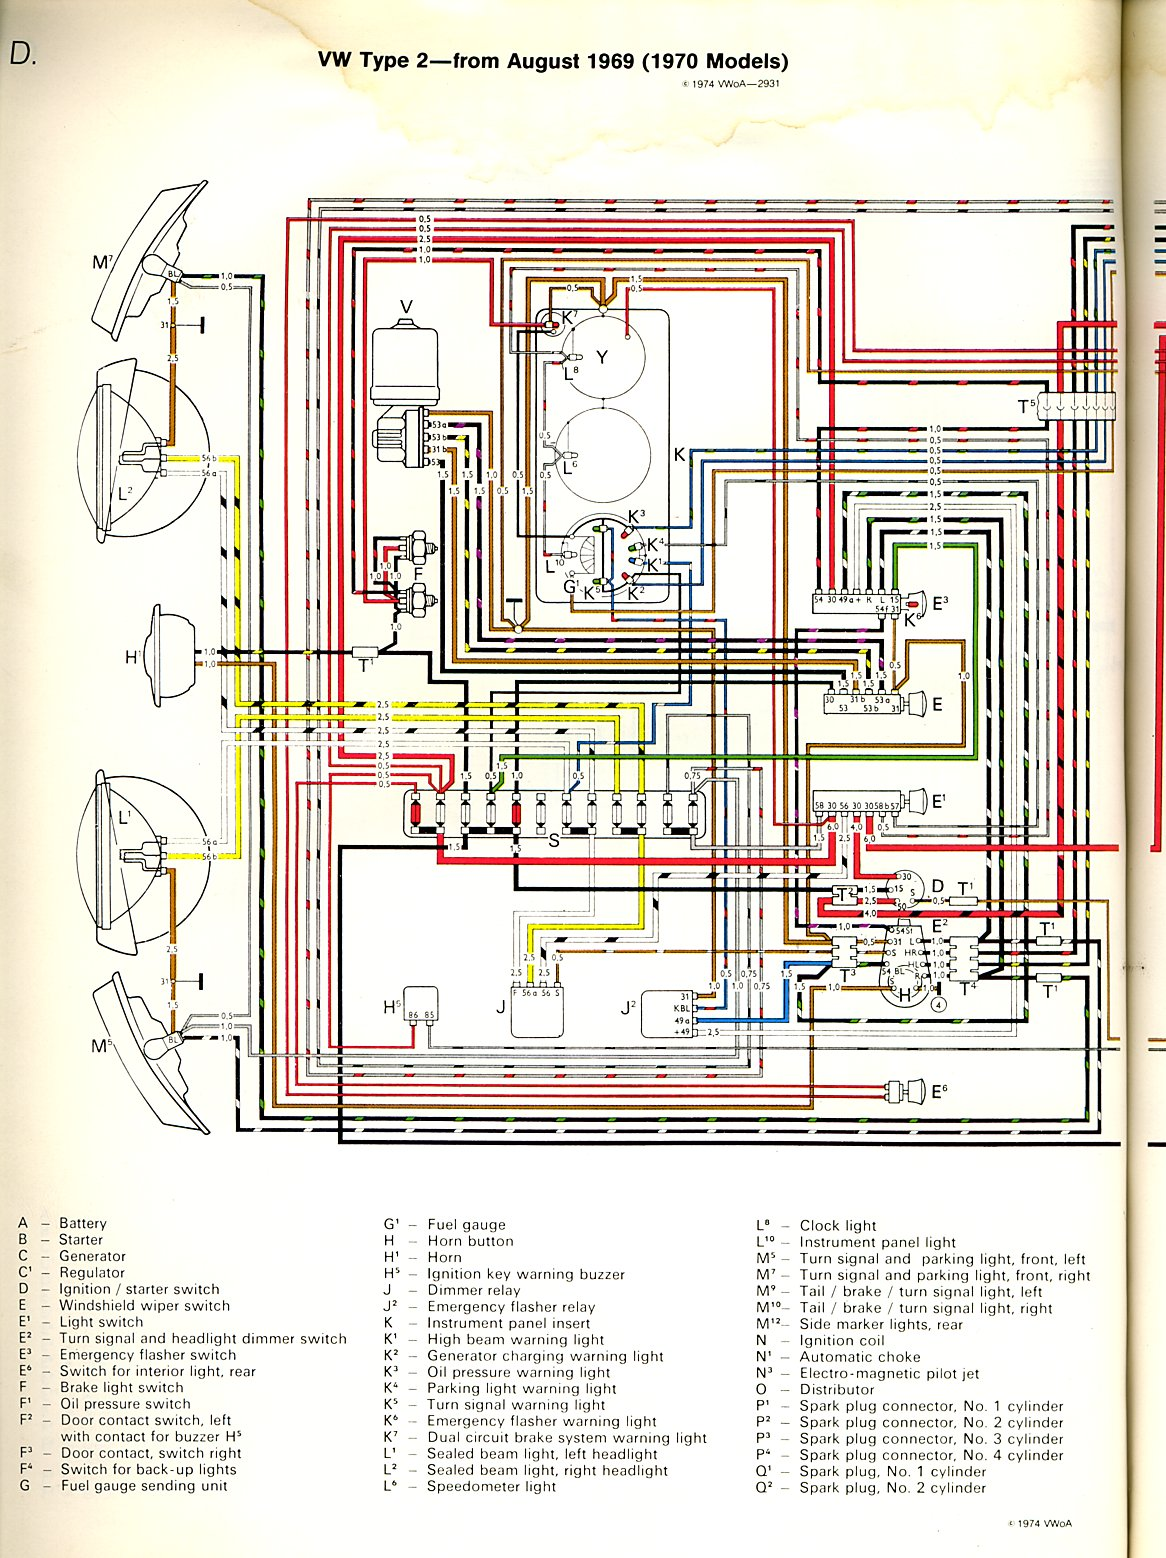 baybus_70a bus wiring diagram vw wiring harness diagram \u2022 wiring diagrams j 1971 vw bus wiring diagram at love-stories.co